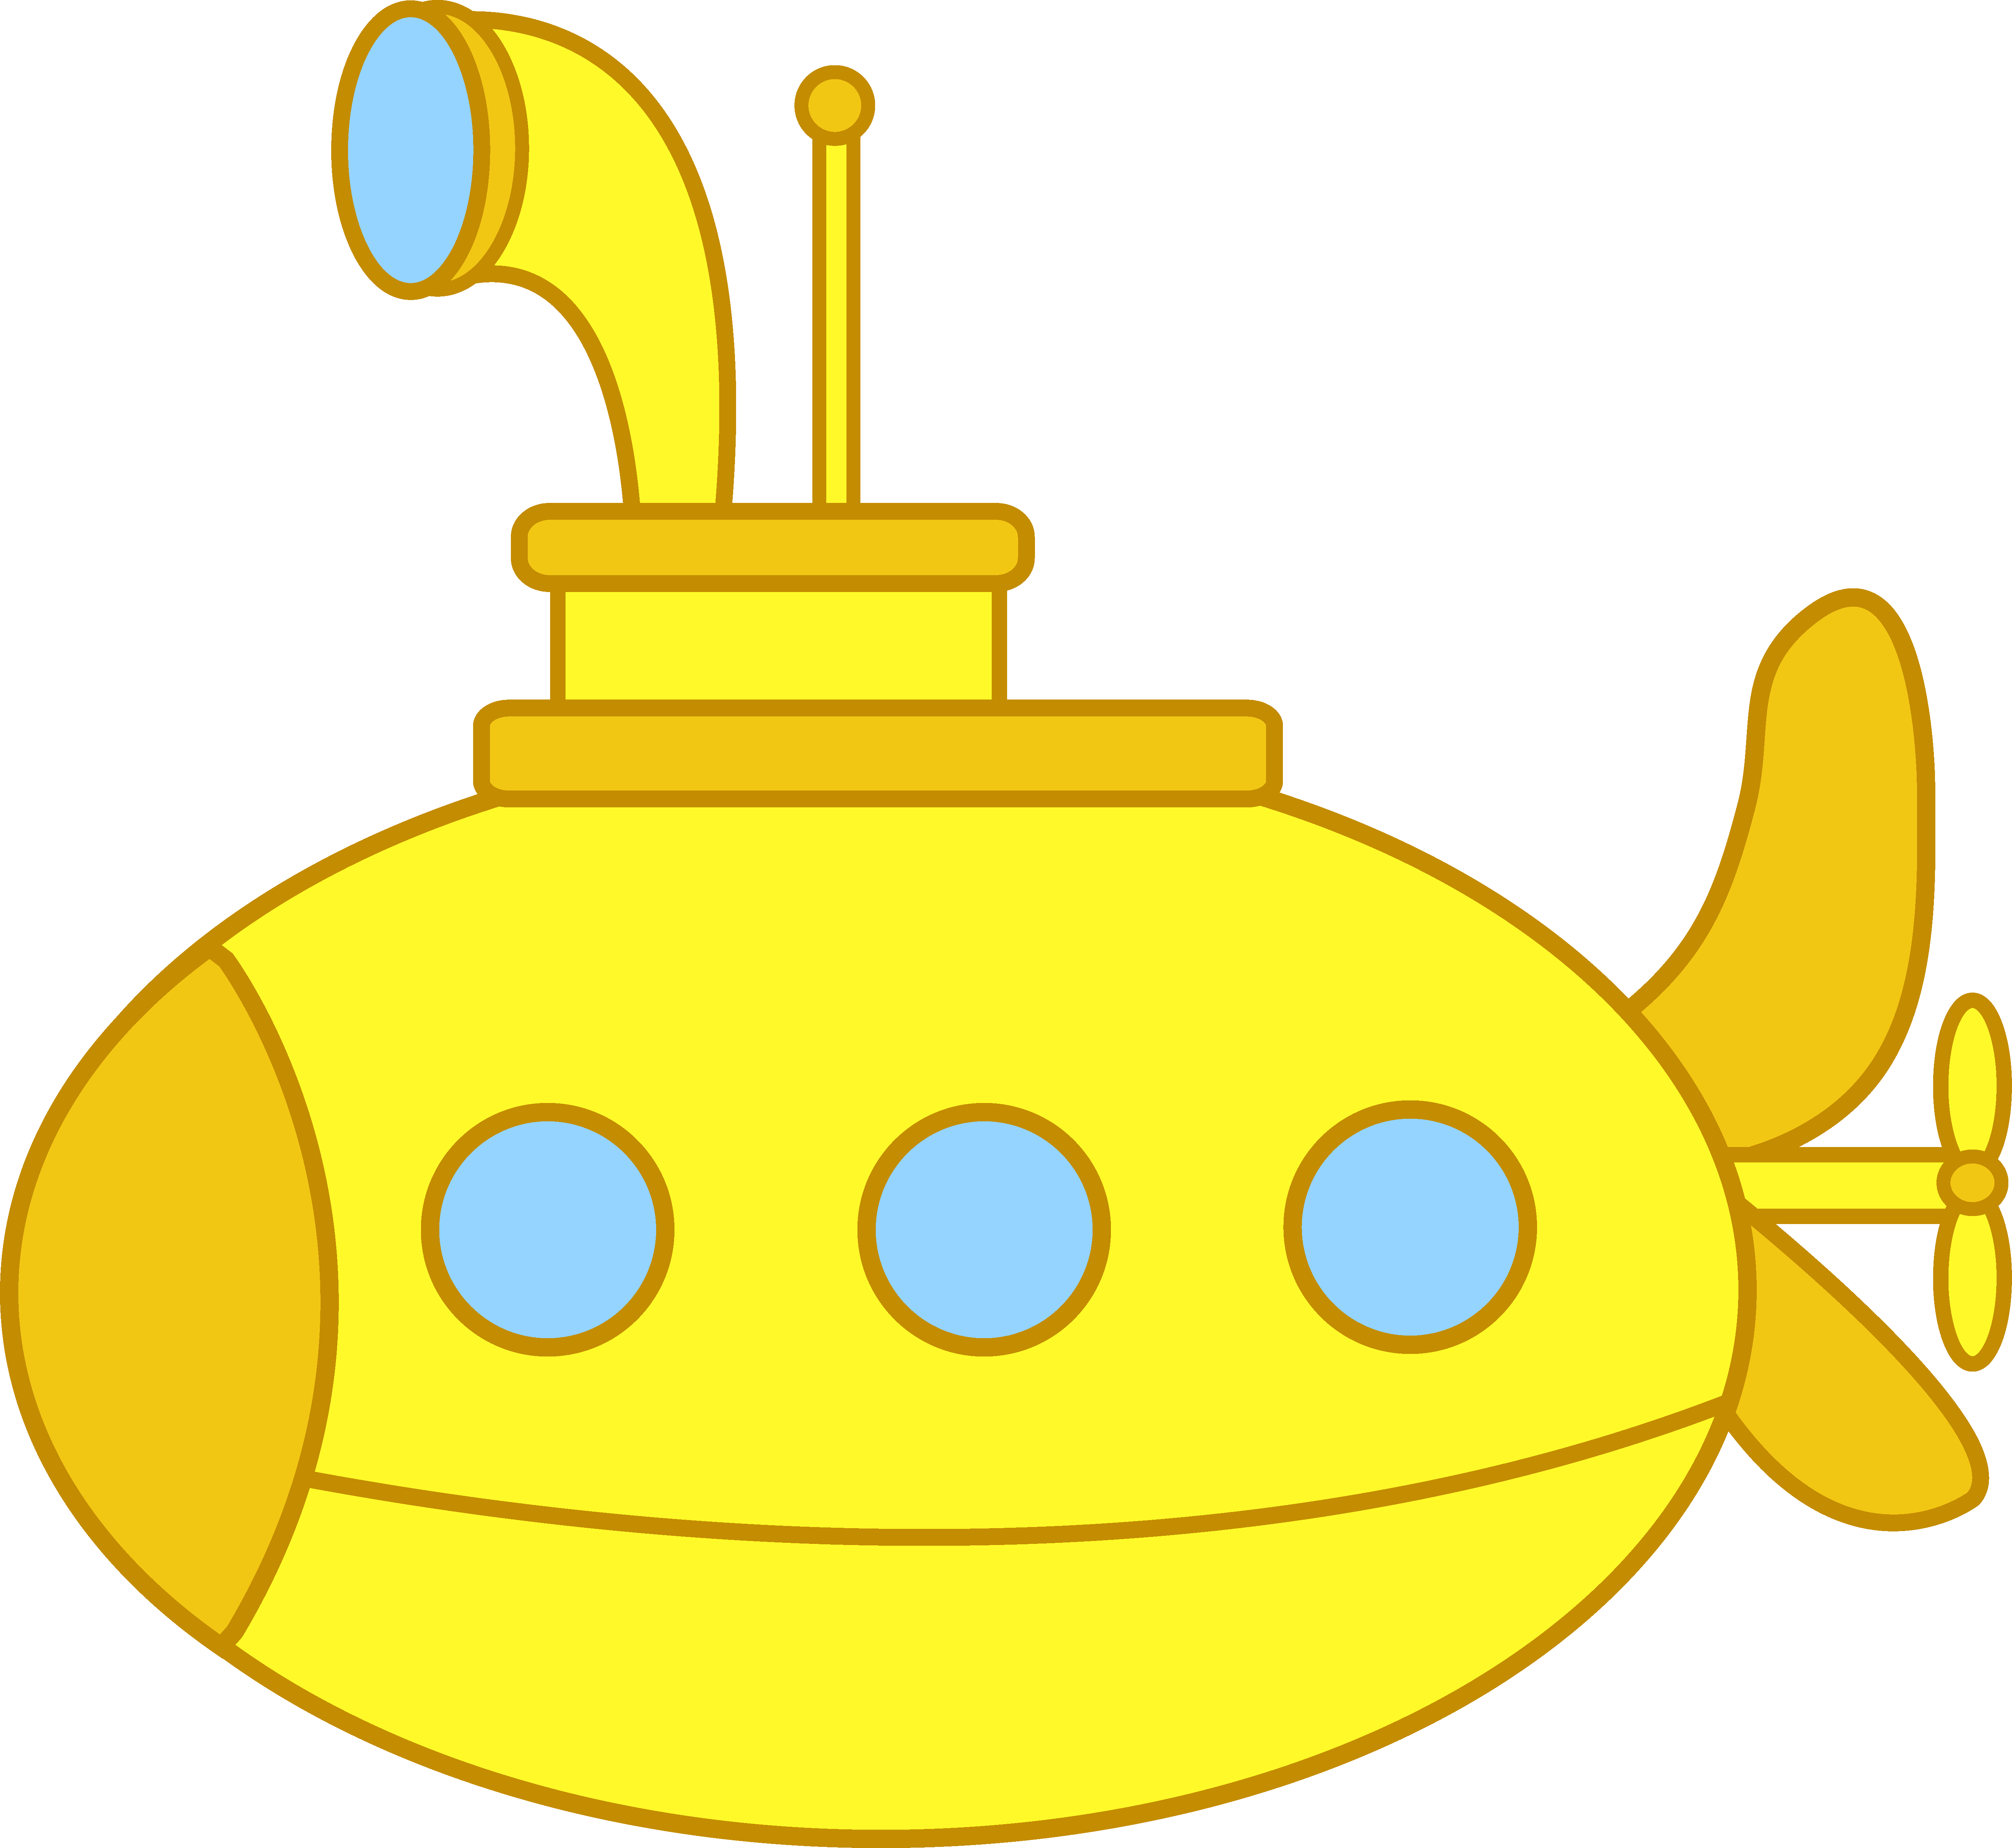 royalty free library Yellow Submarine Clipart